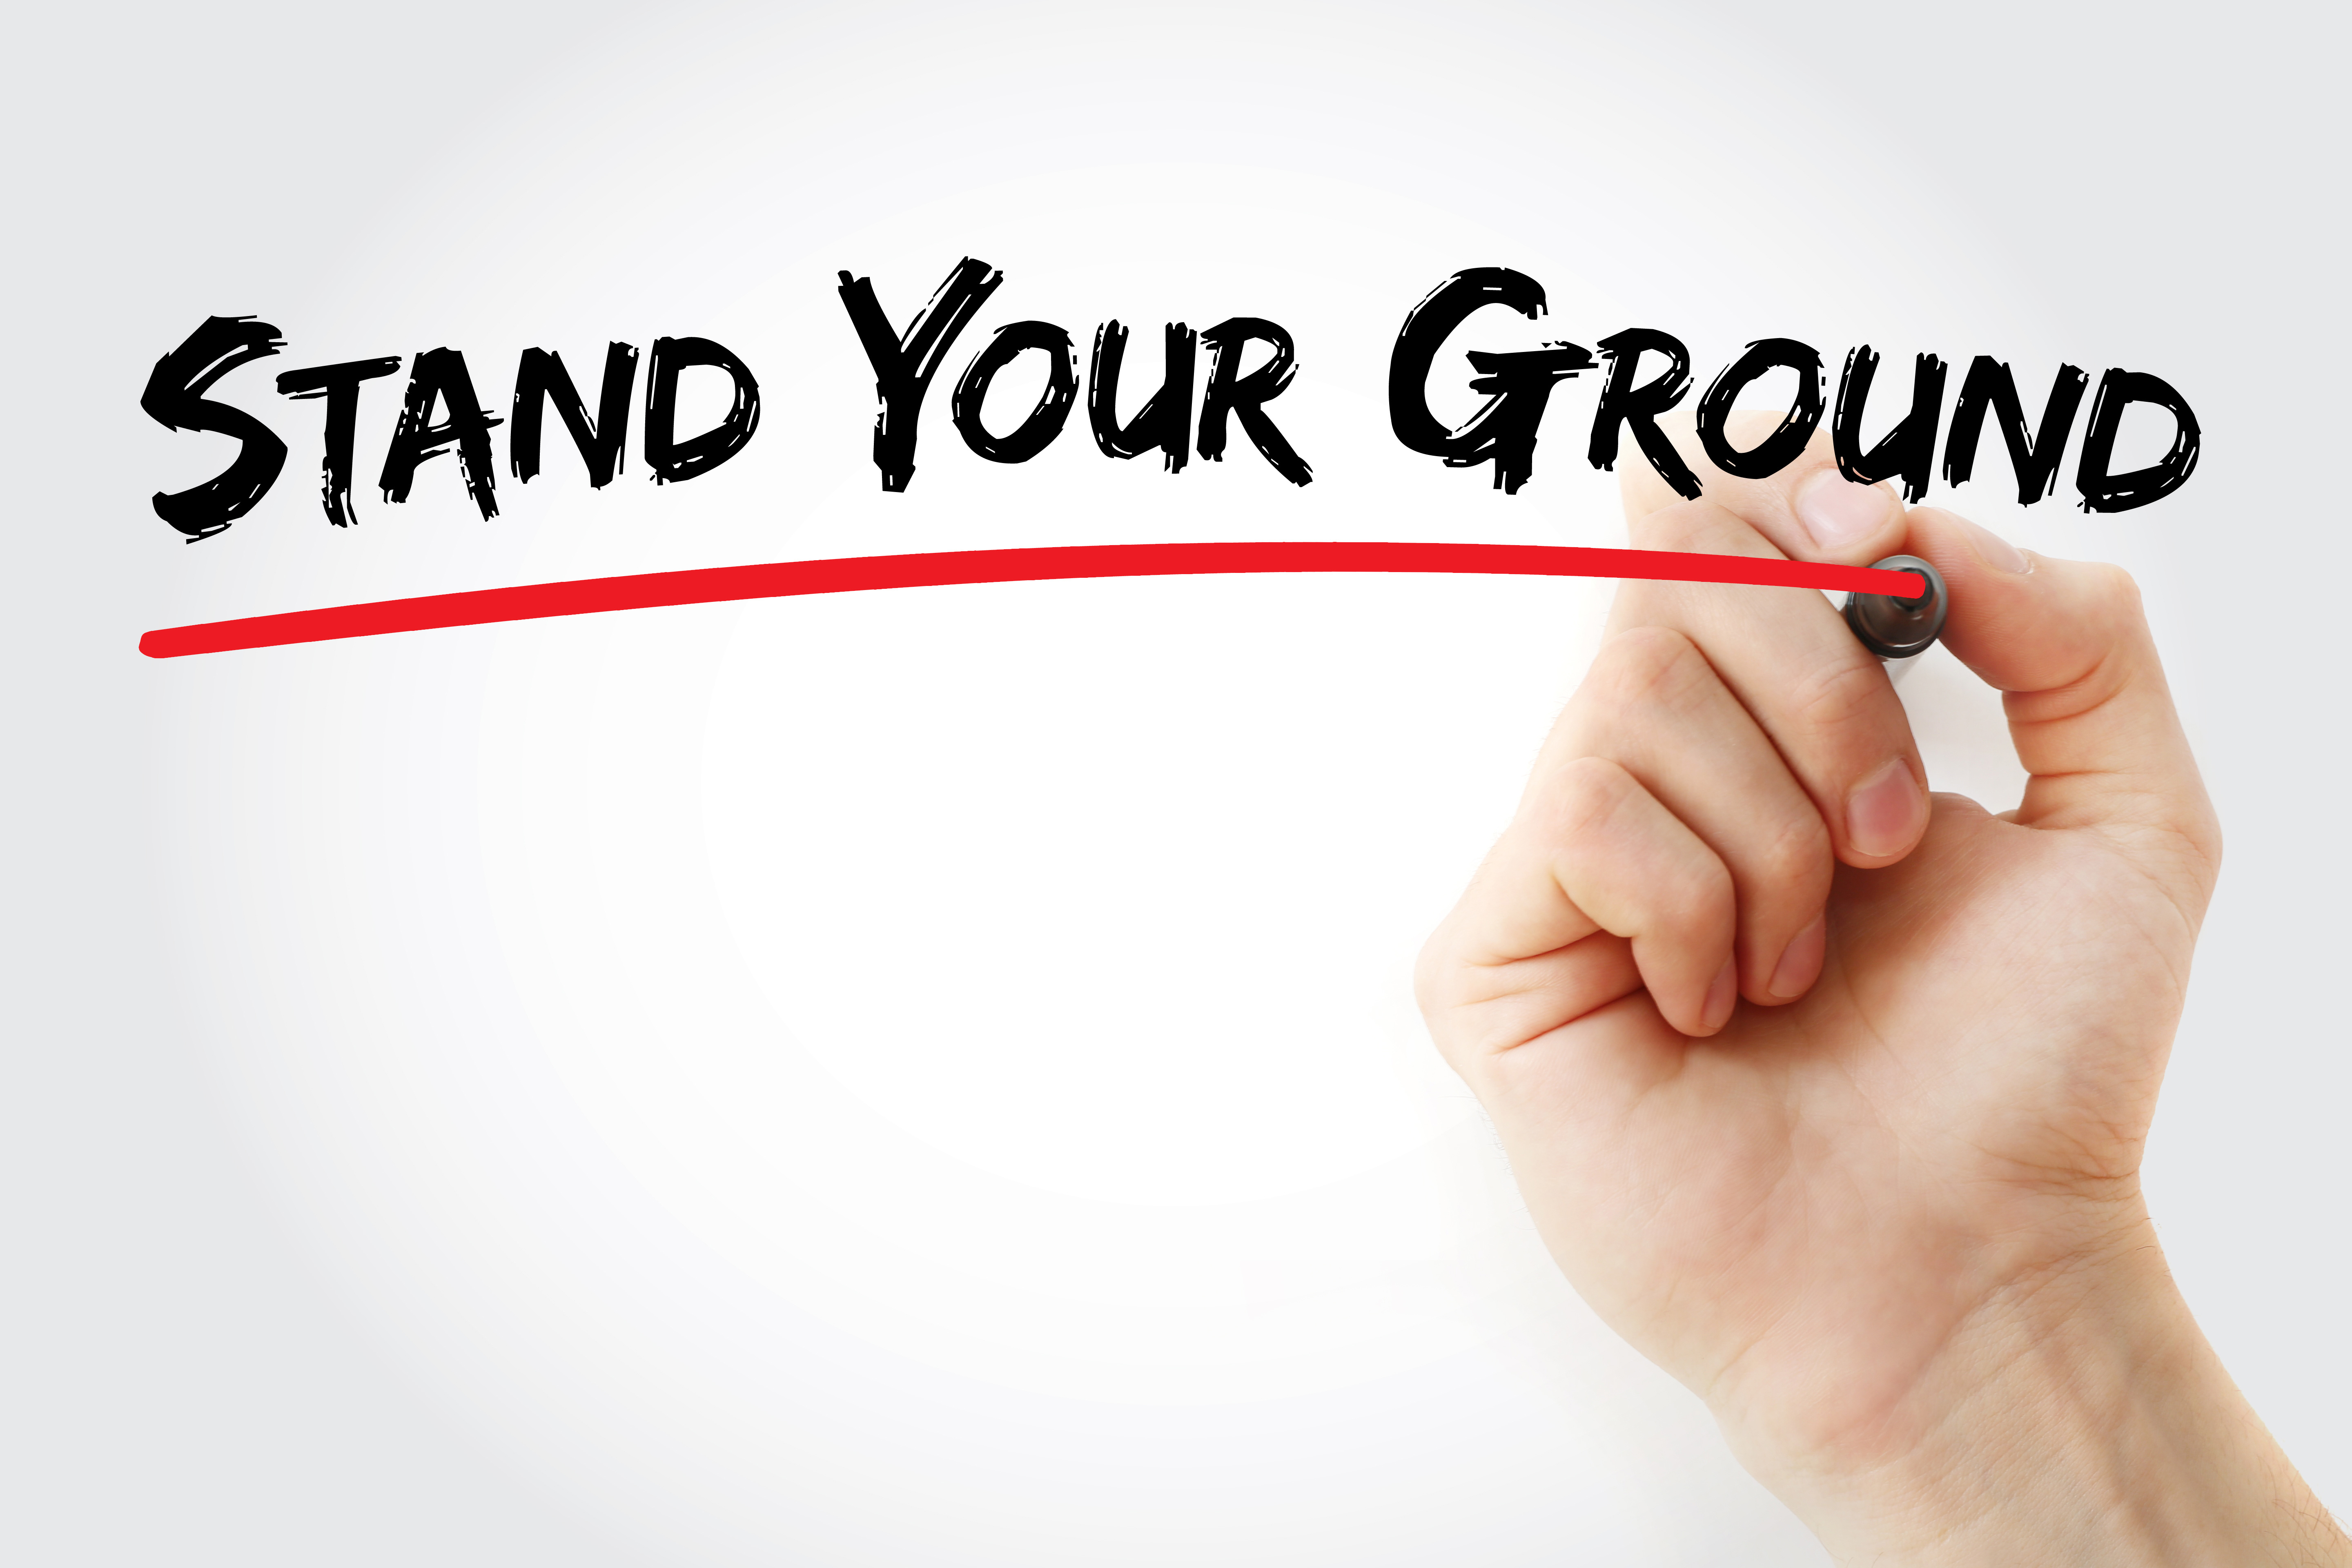 Stand_Your_Ground